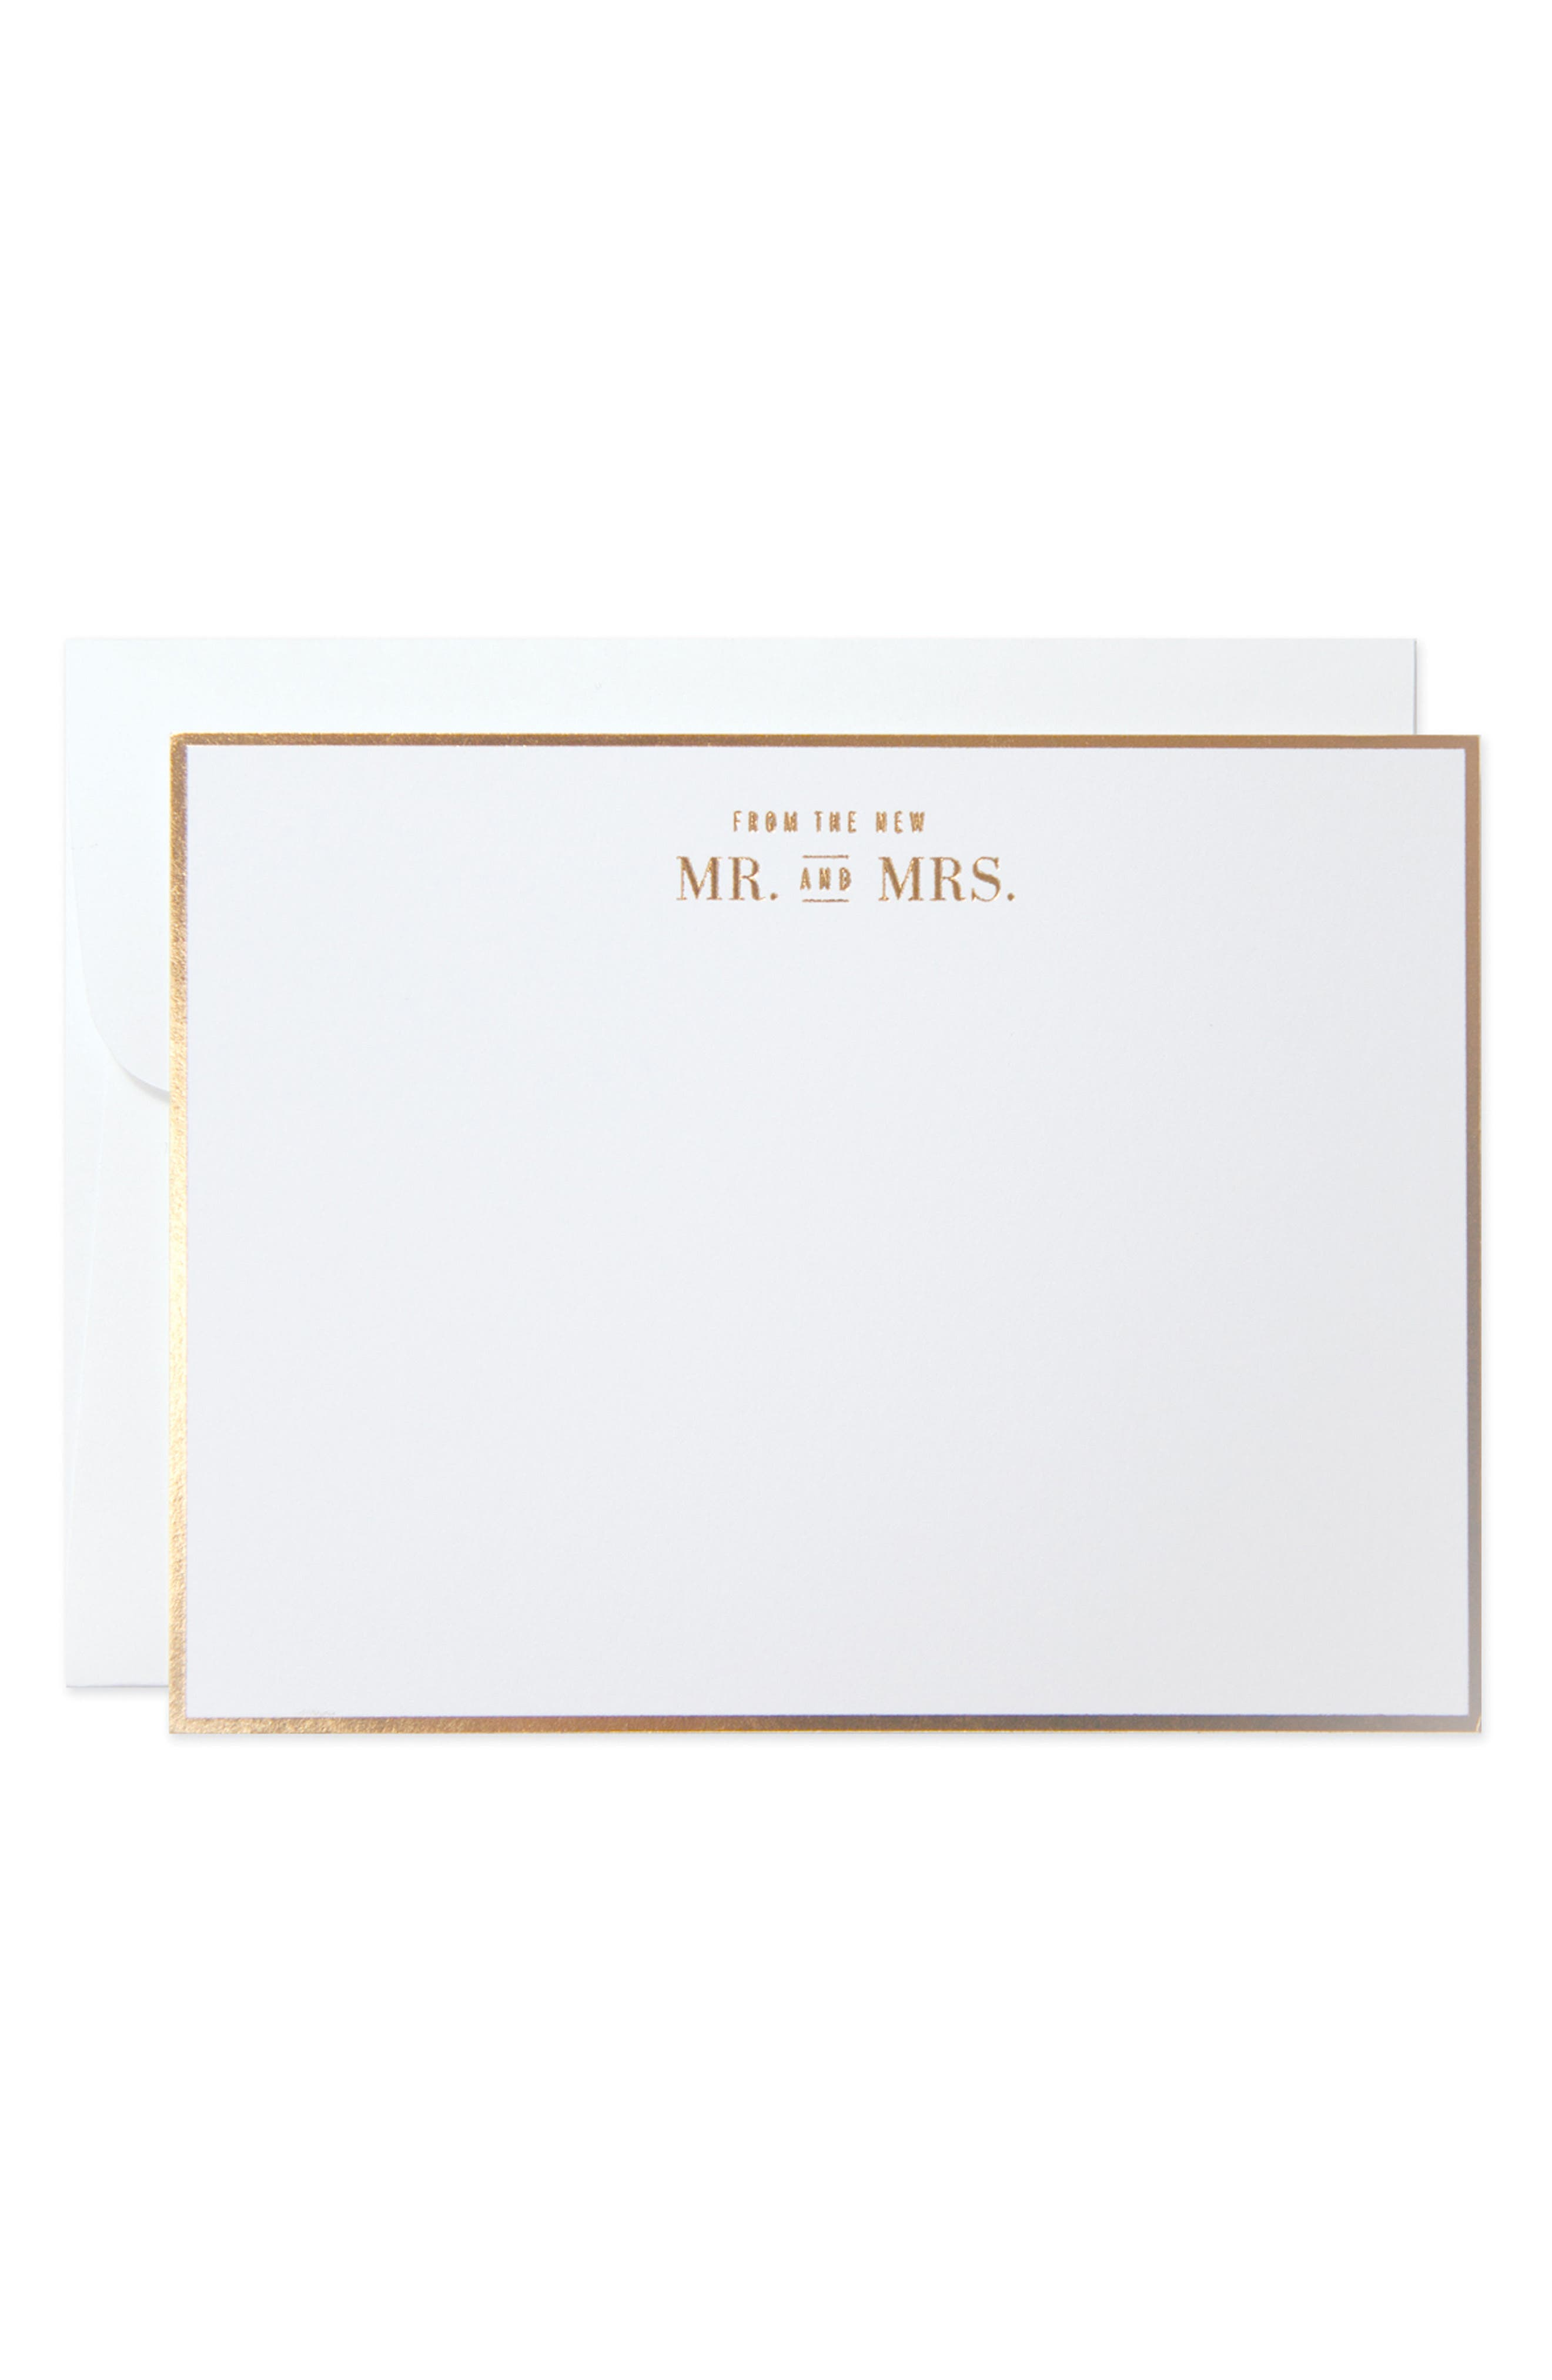 The Pink Orange From the New Mr. & Mrs. Cards